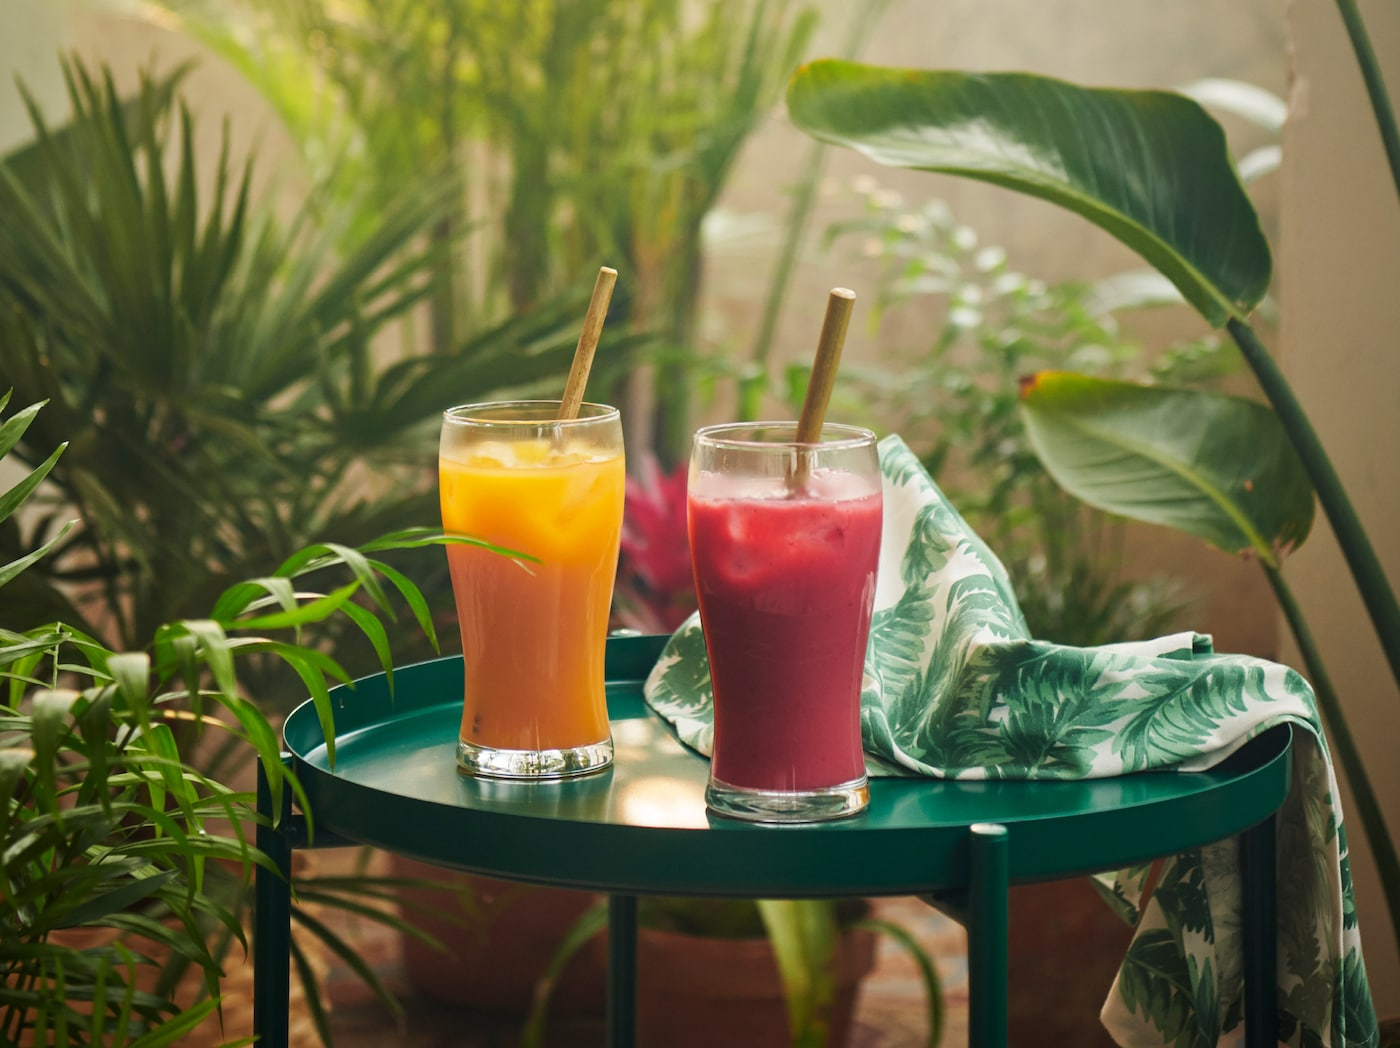 Two glasses with FRUKTSTUND pre-blended smoothie mixes in tropical yellow and strawberry red placed on a table among plants.